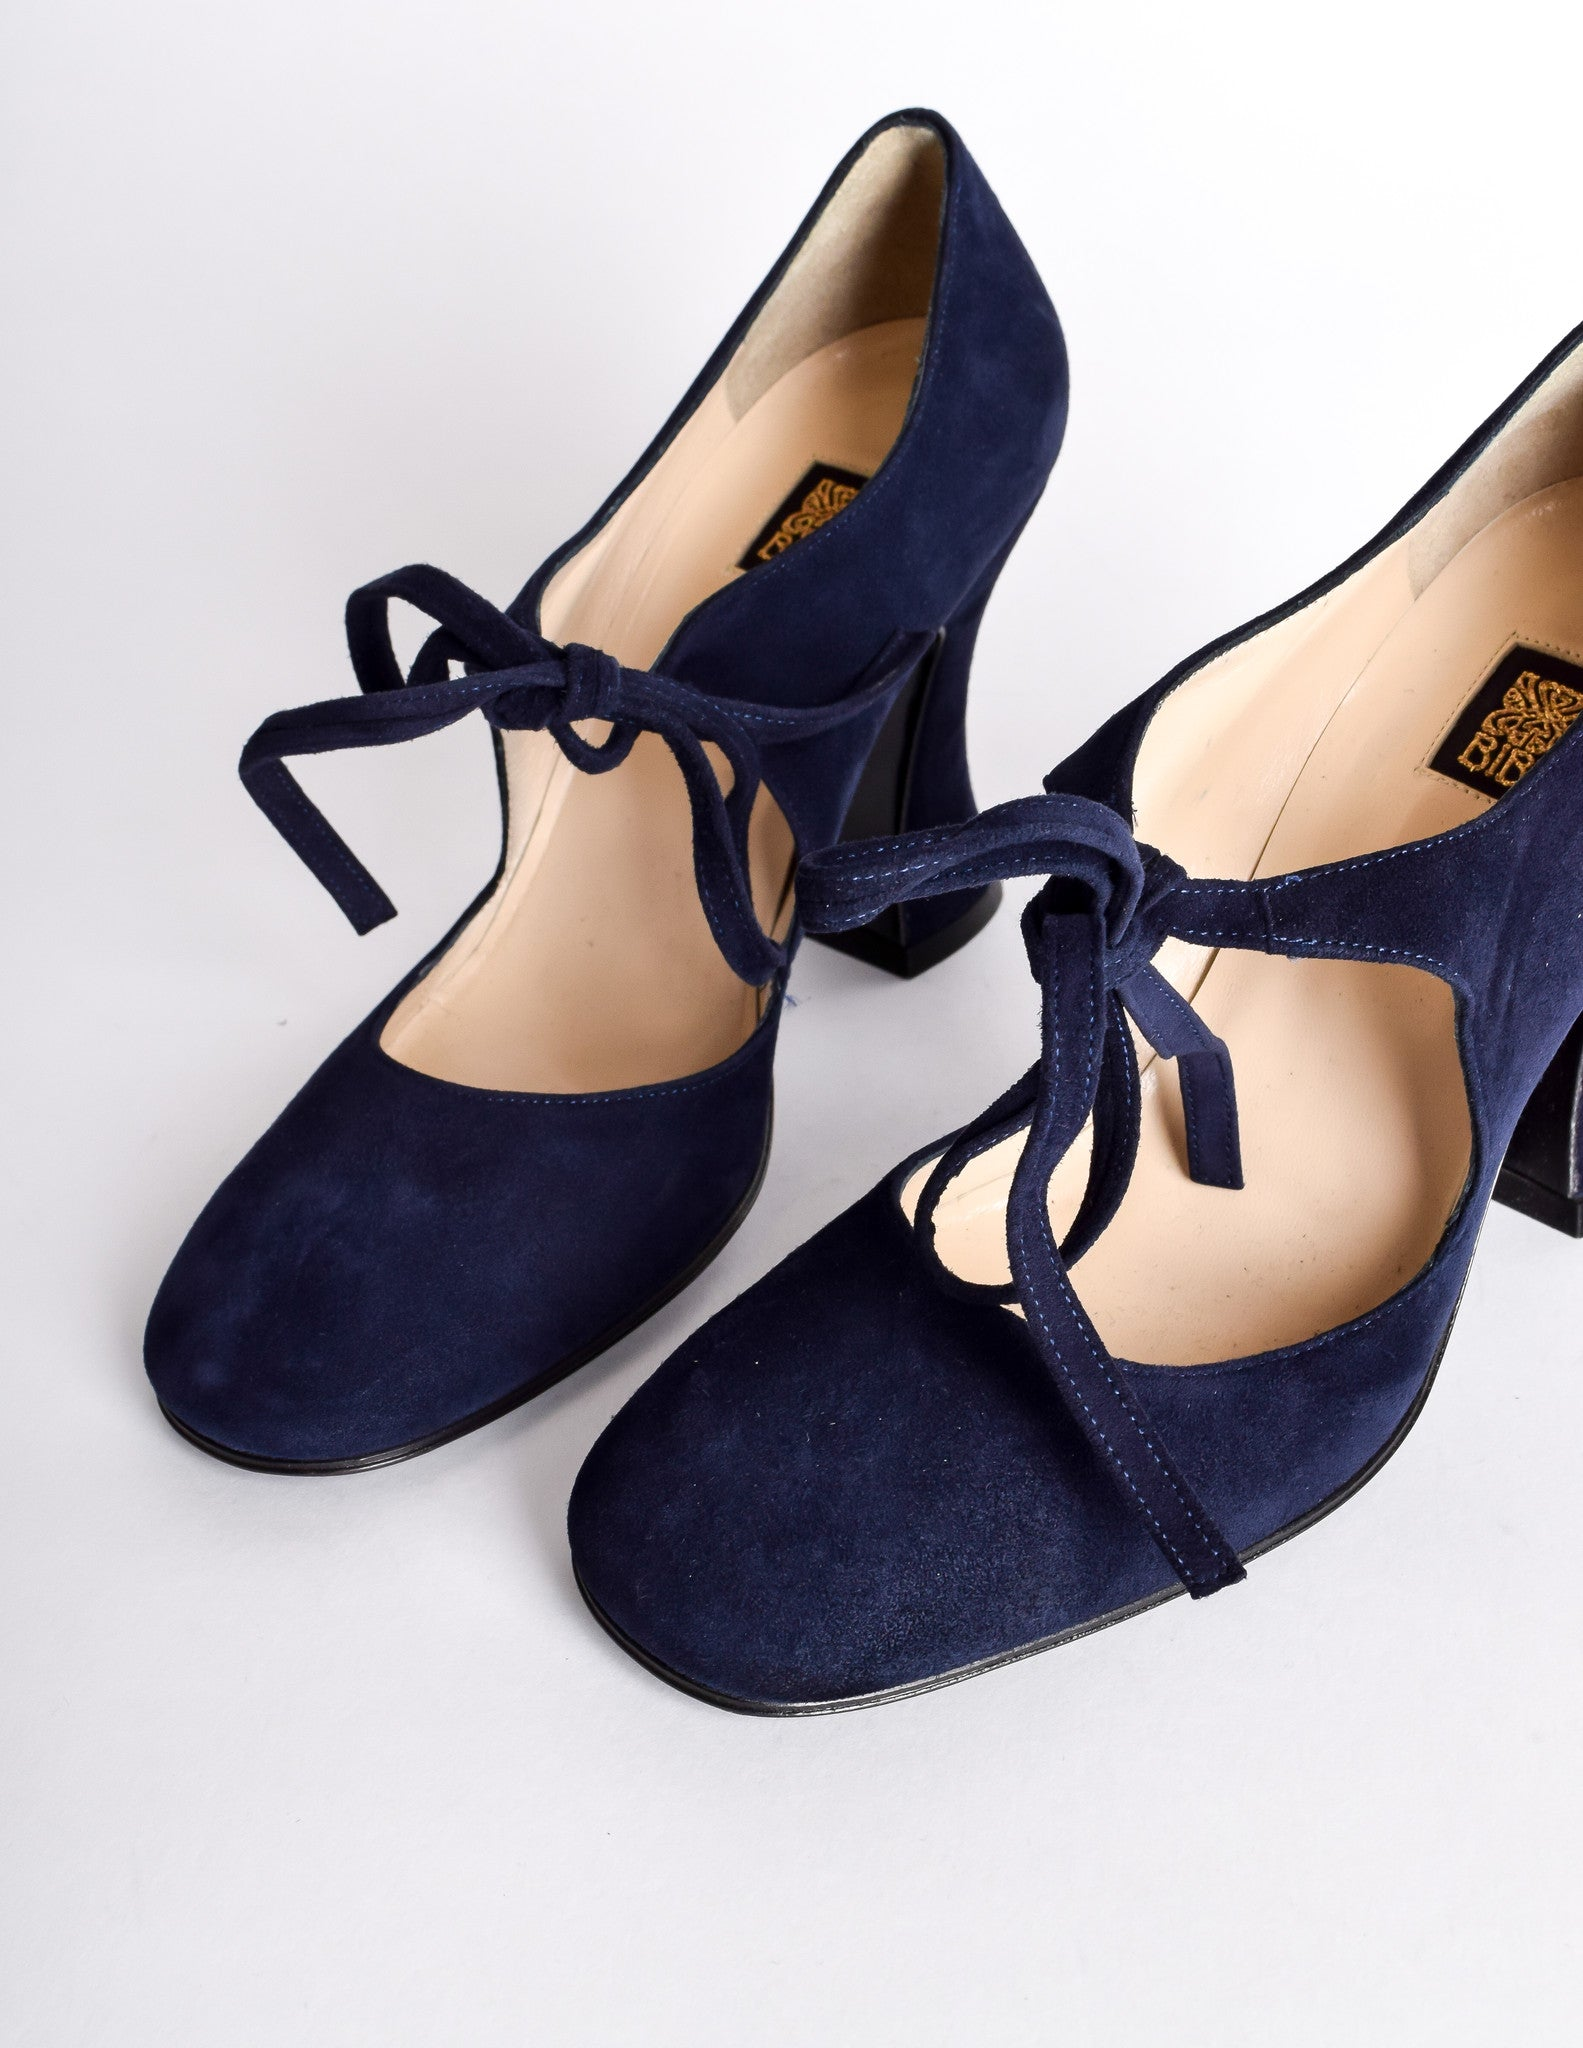 Biba Vintage Navy Blue Suede Mary Jane Heels - from Amarcord